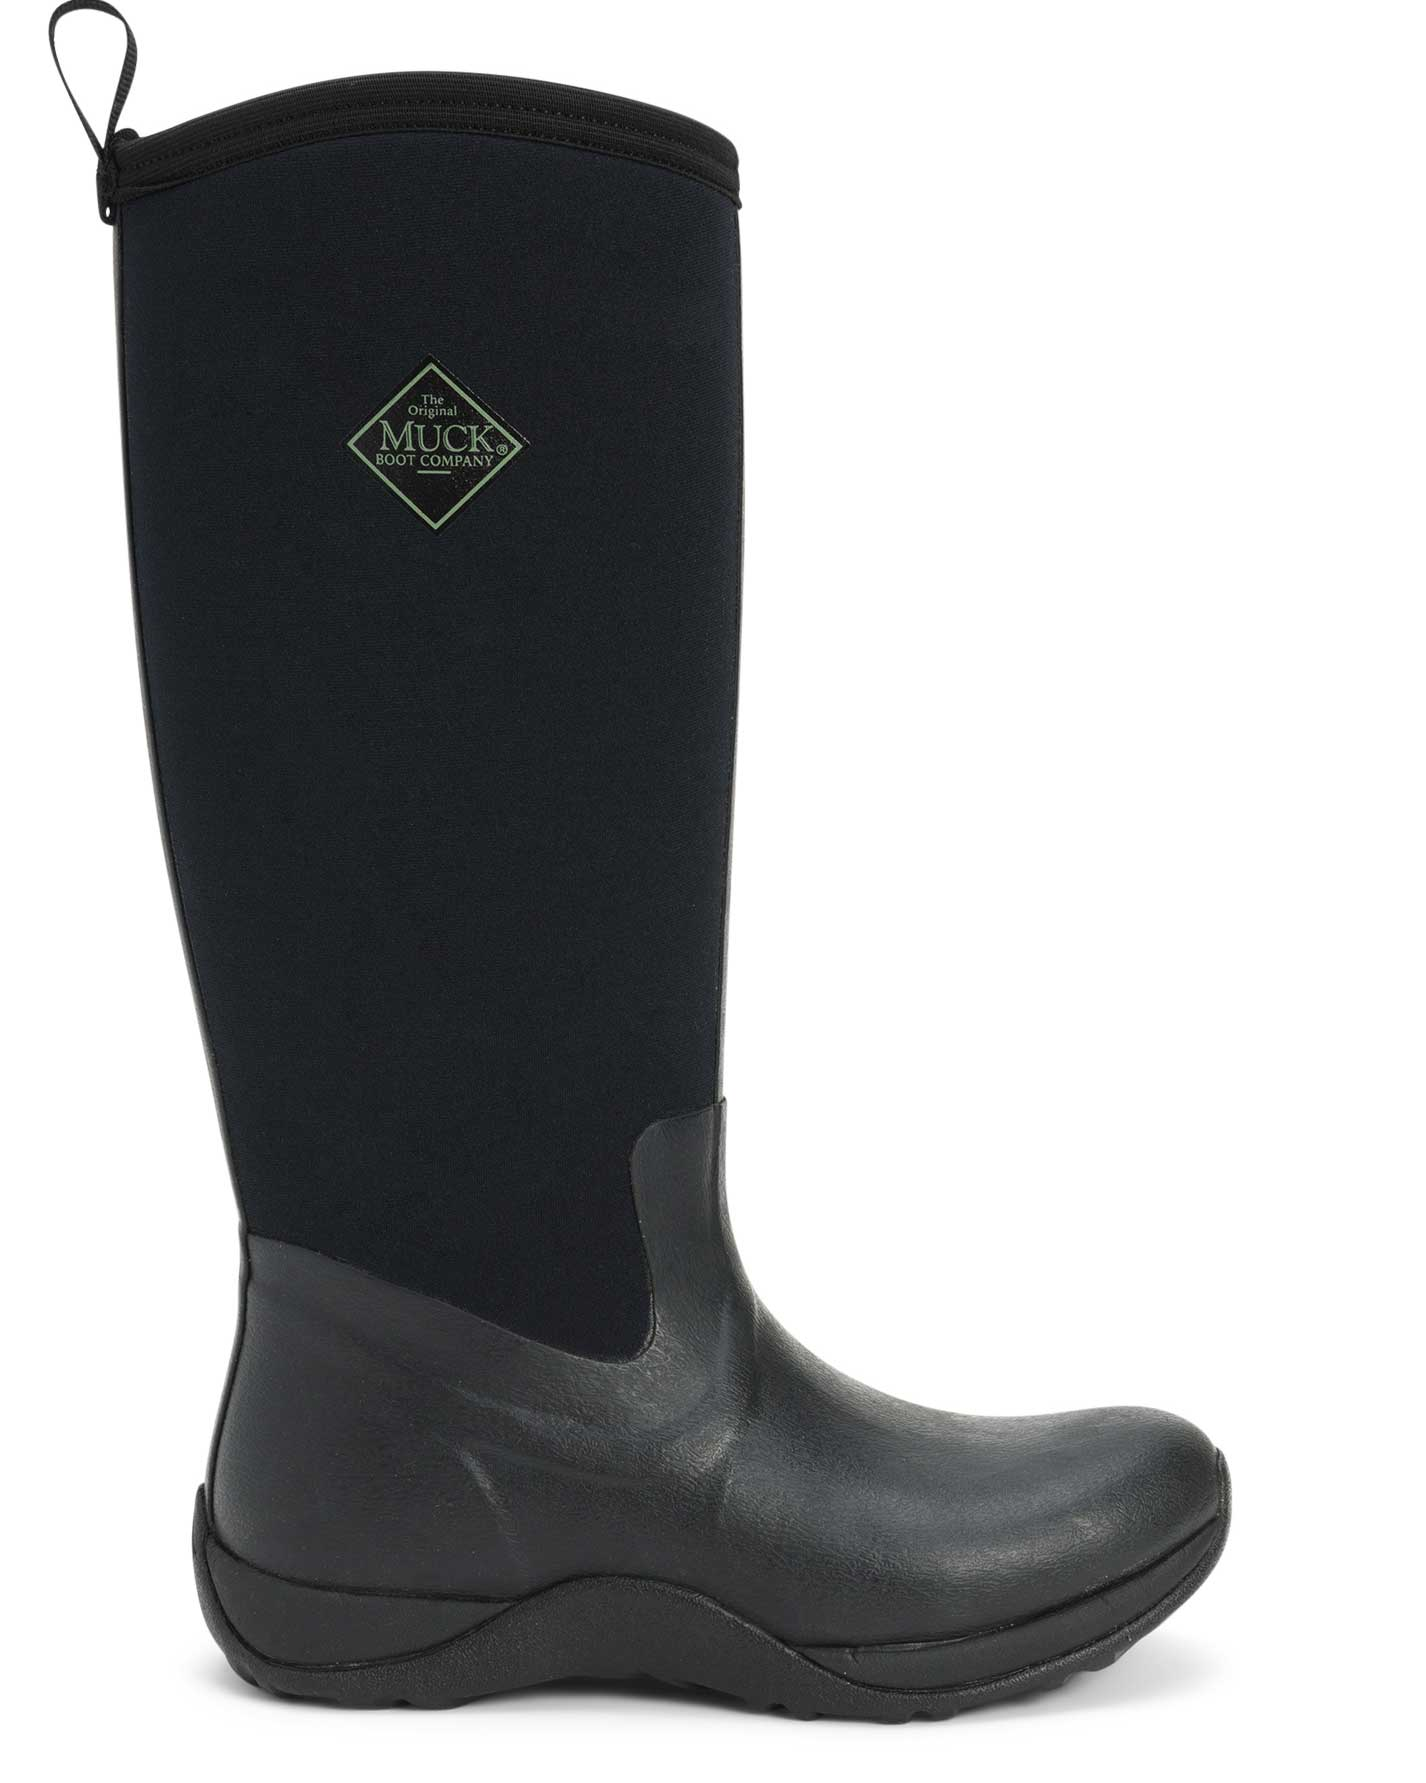 Arctic Adventure Tall Wellies